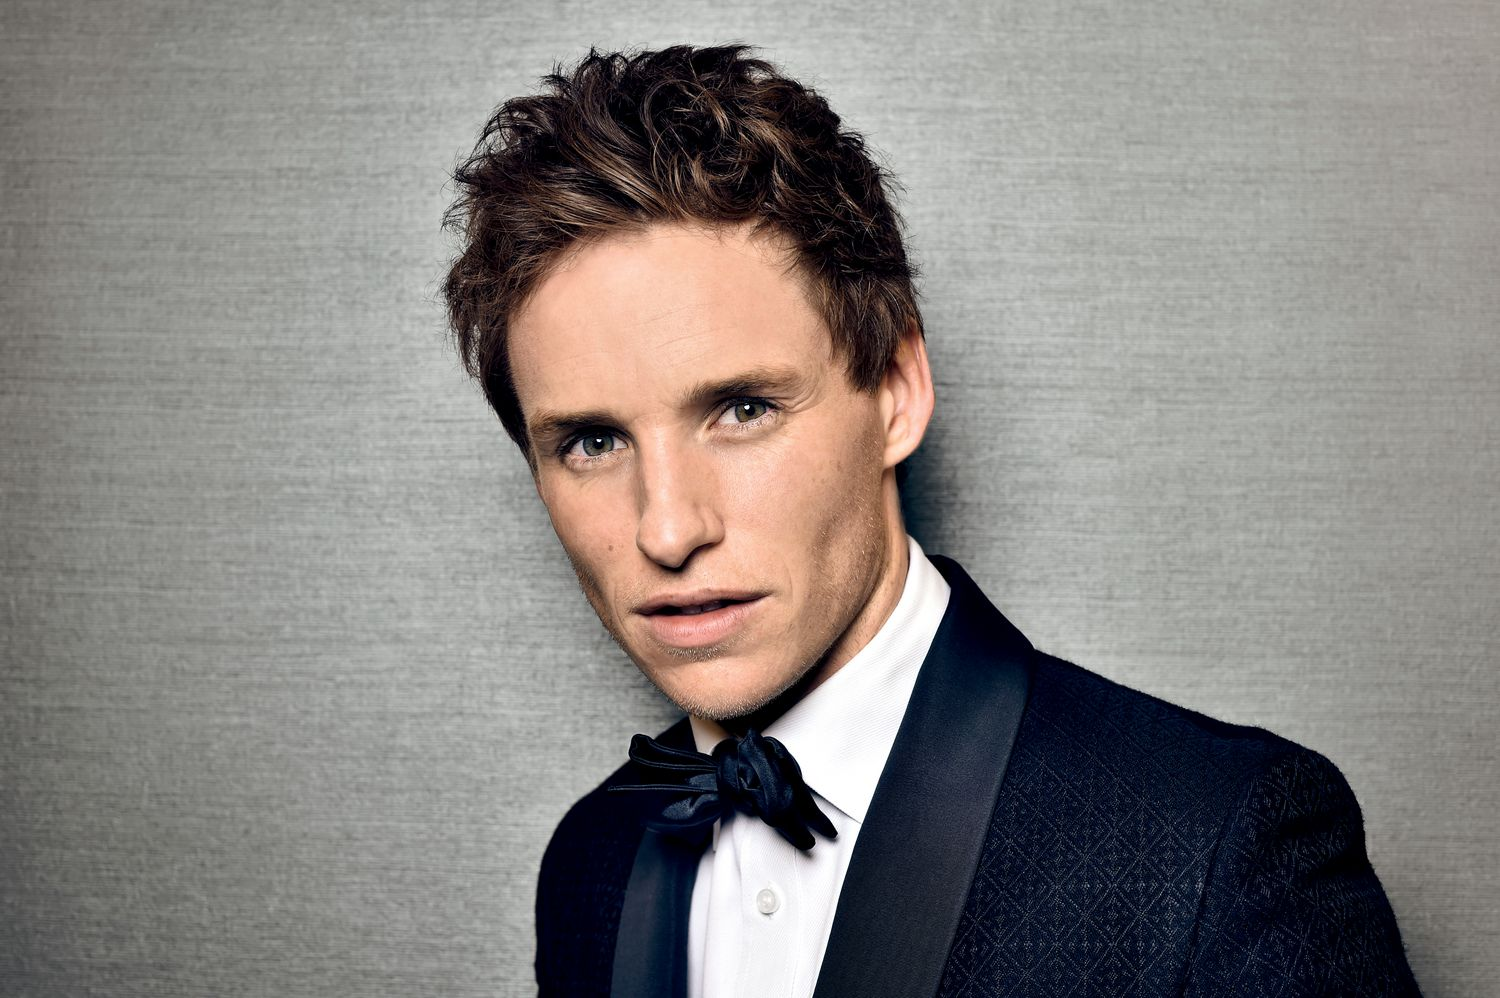 Eddie Redmayne estará en spin-off de Harry Potter